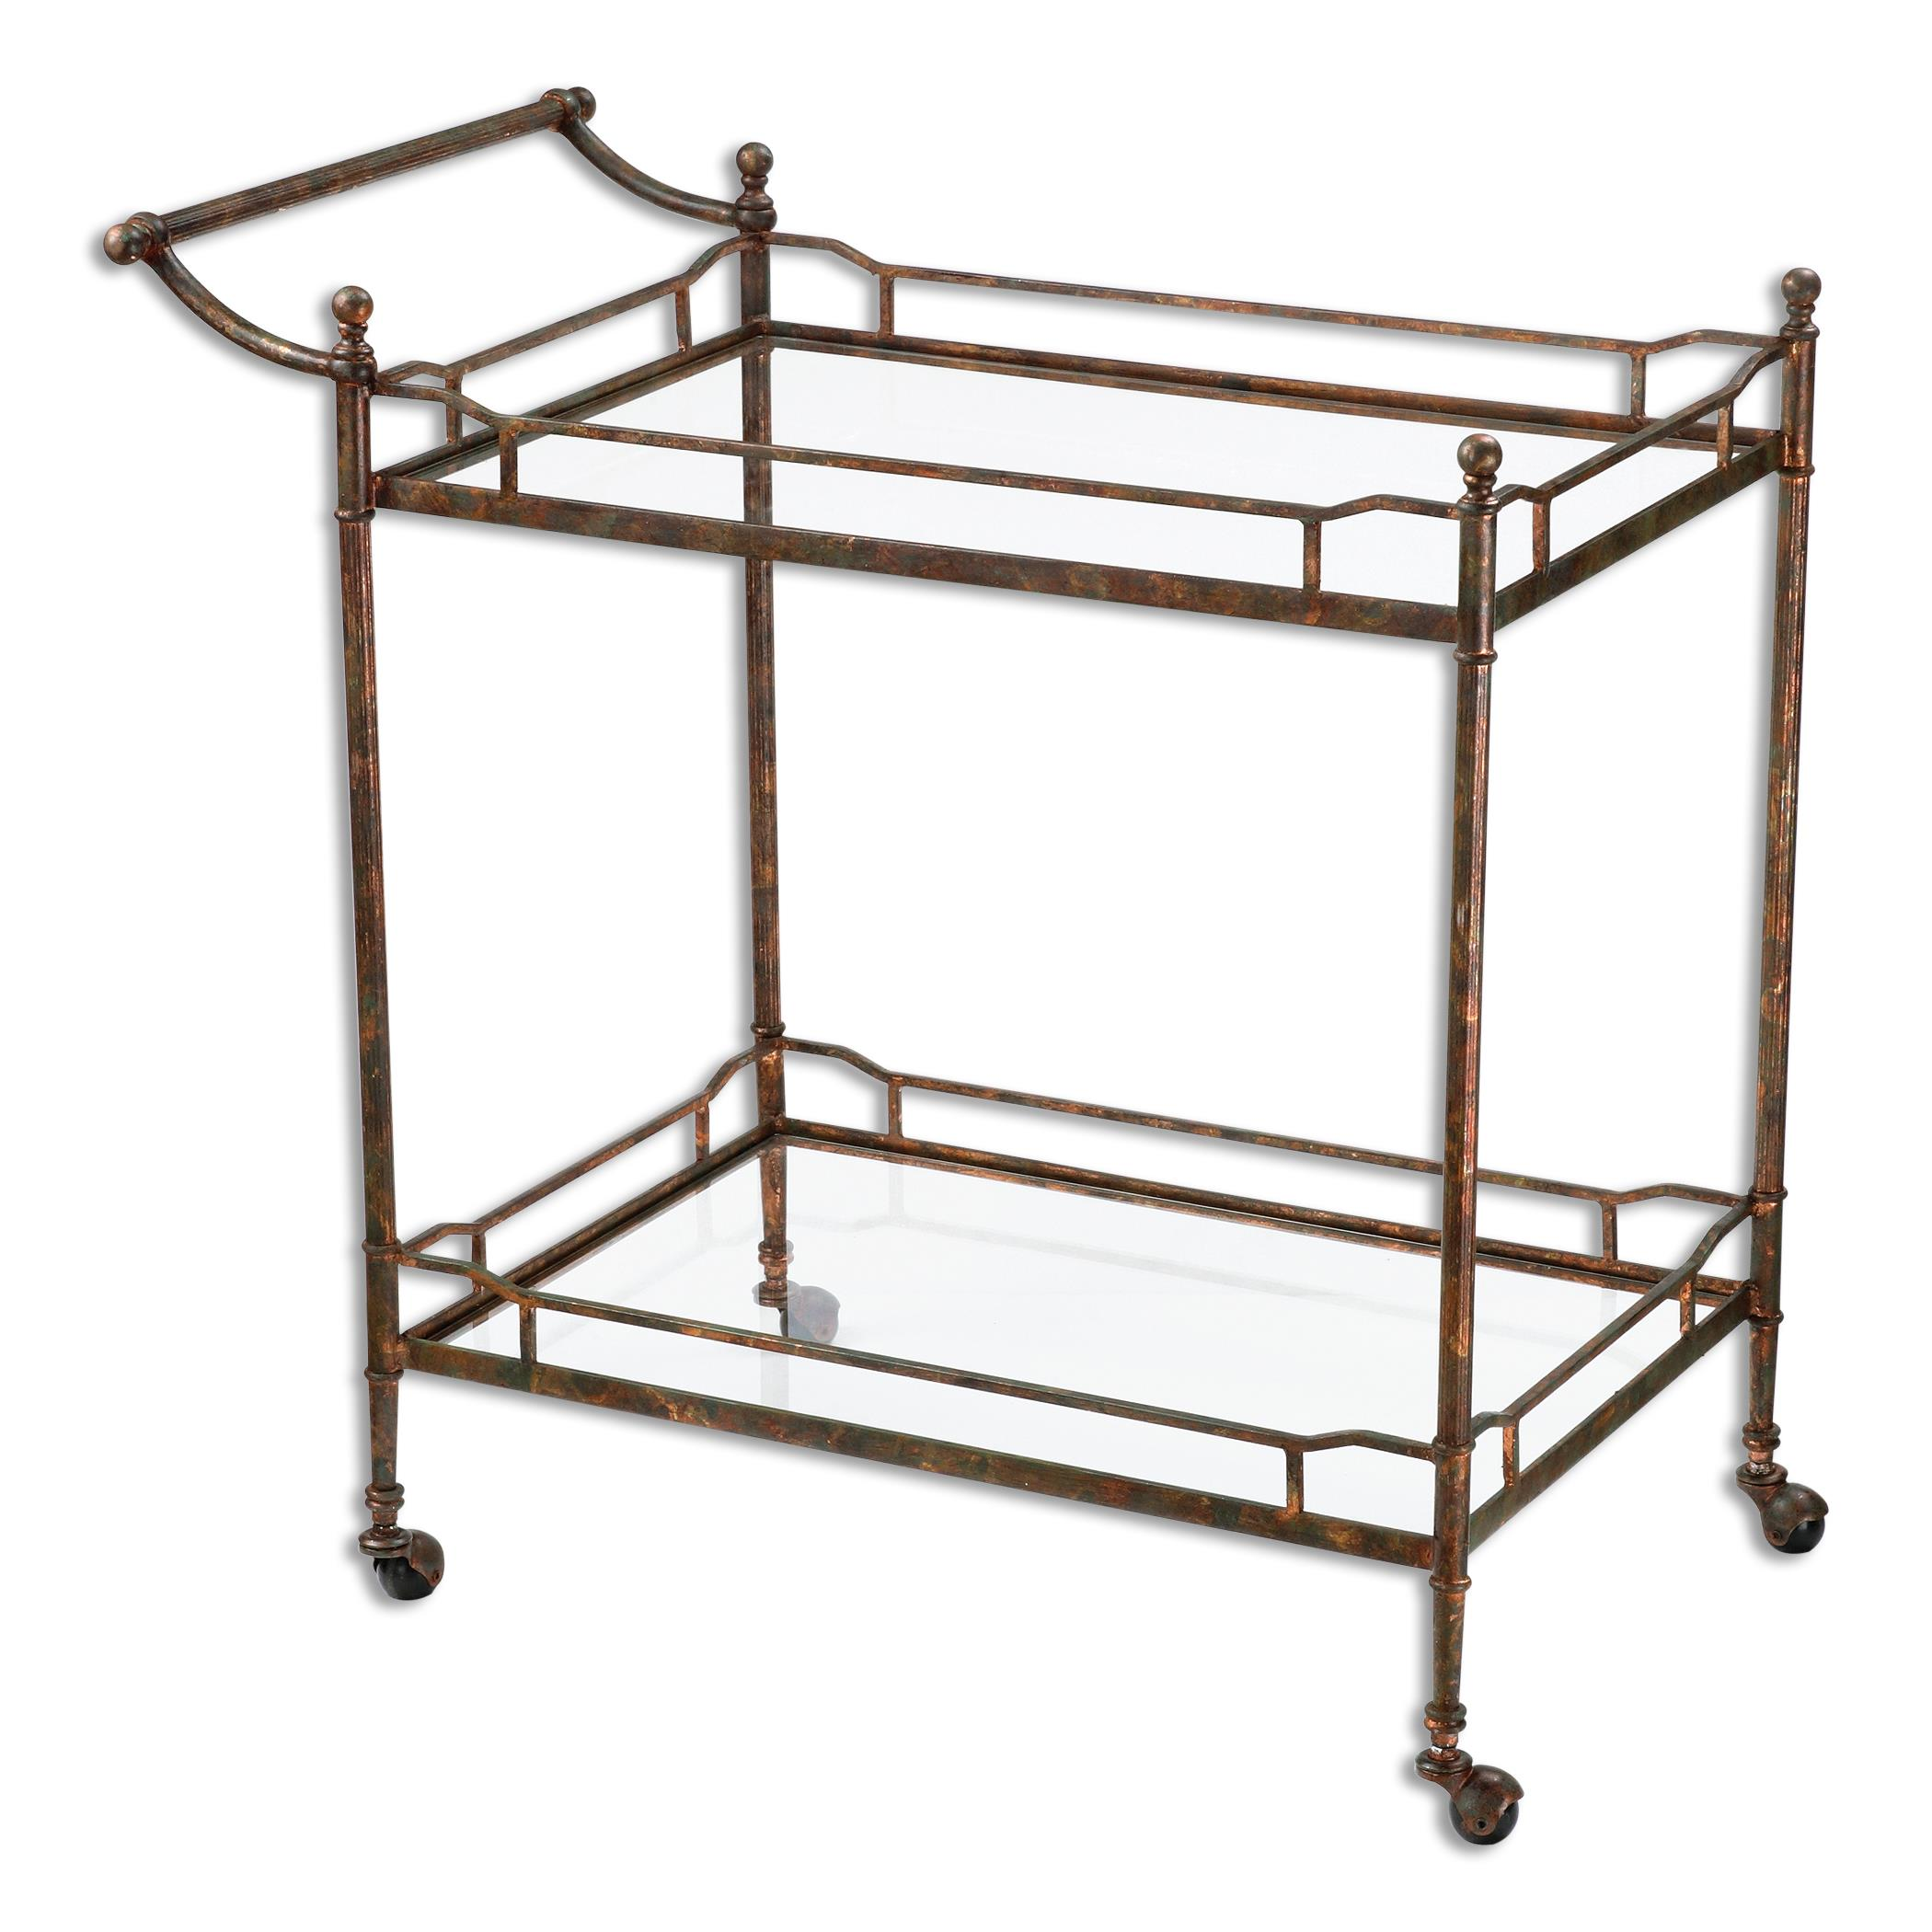 Uttermost Accent Furniture Stasia Glass Tea Cart - Item Number: 24465